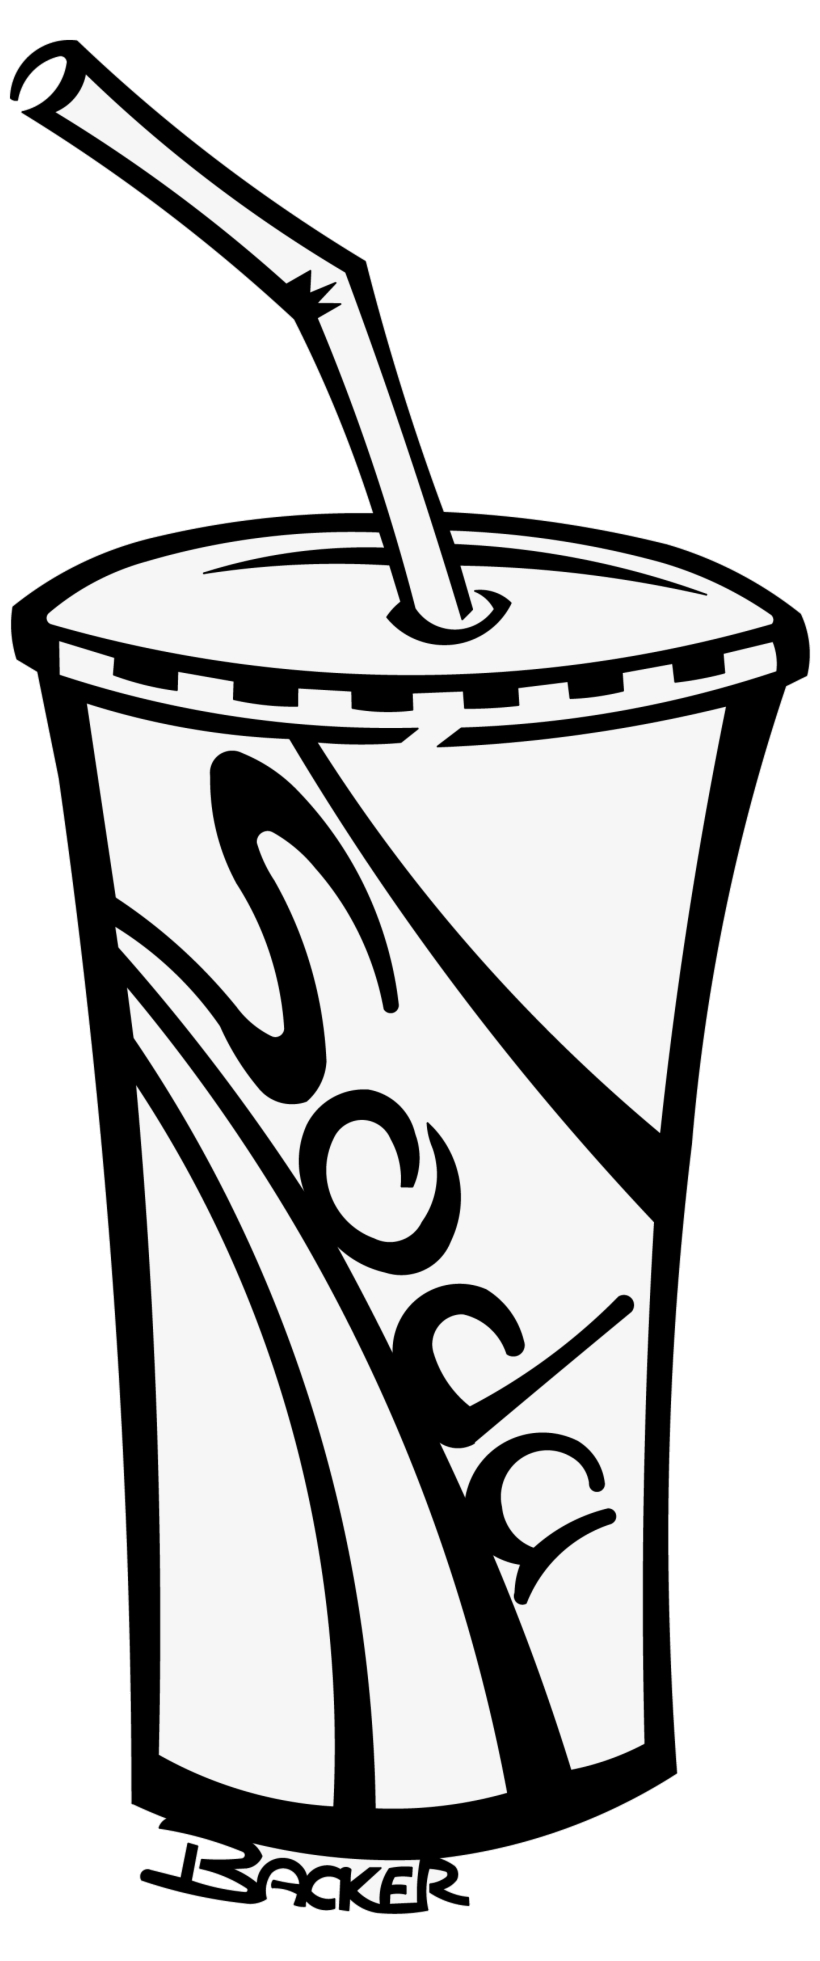 Drinks clipart black and white. Soda cup soft free